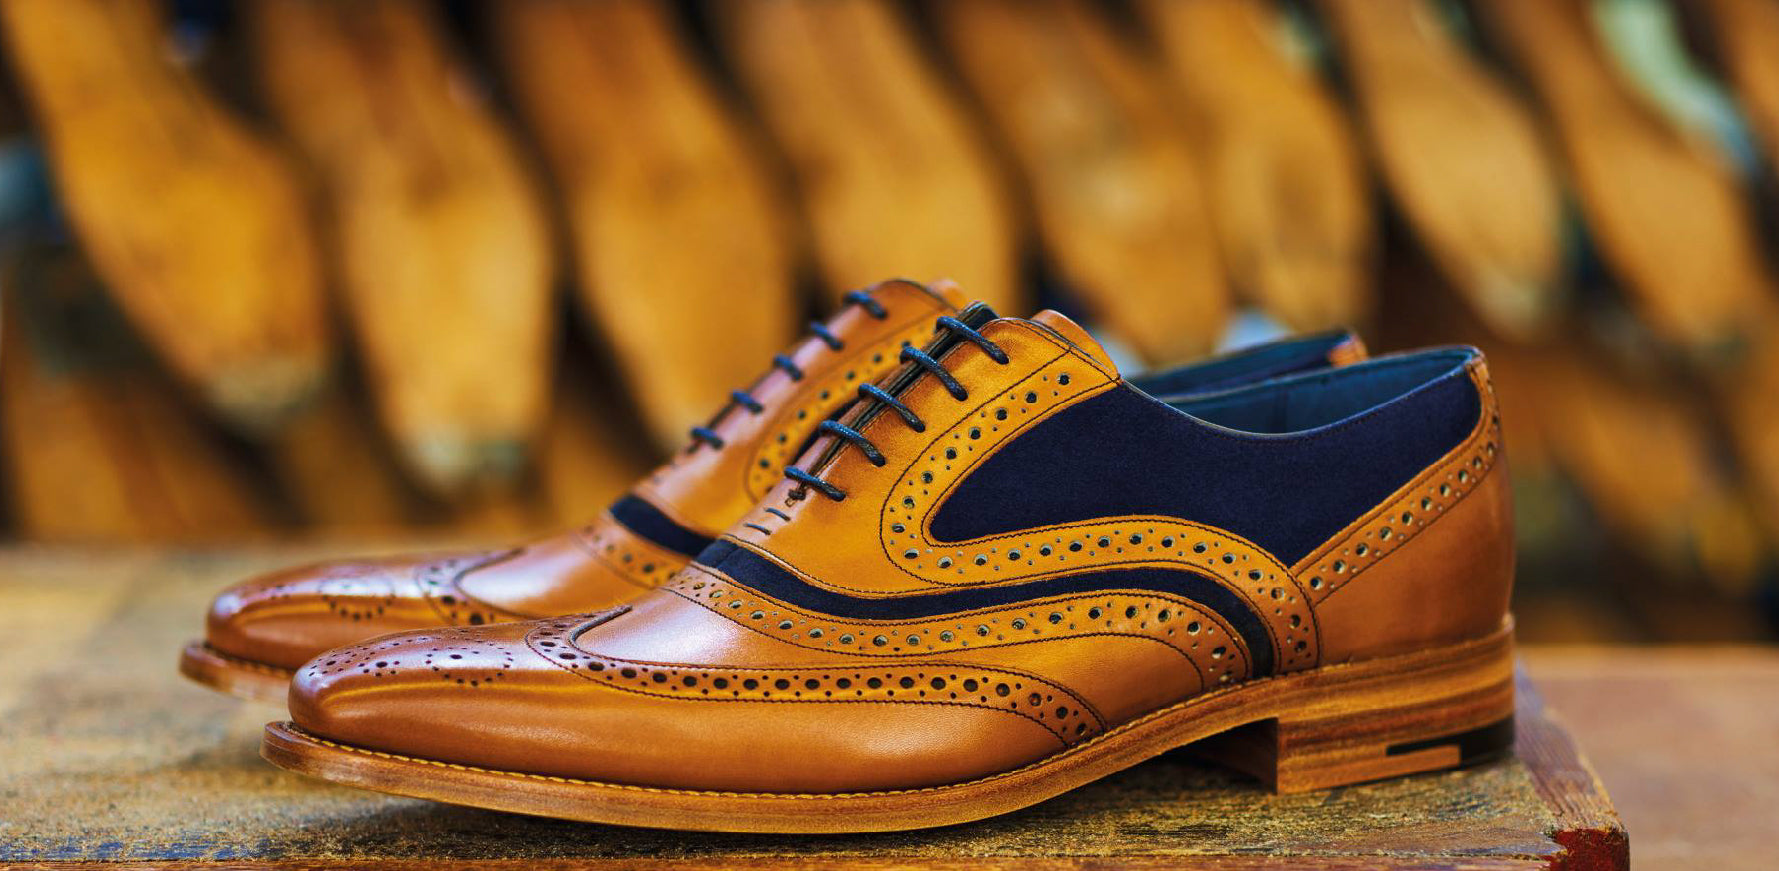 McClean - Men's Leather Wedding Shoes By Barker